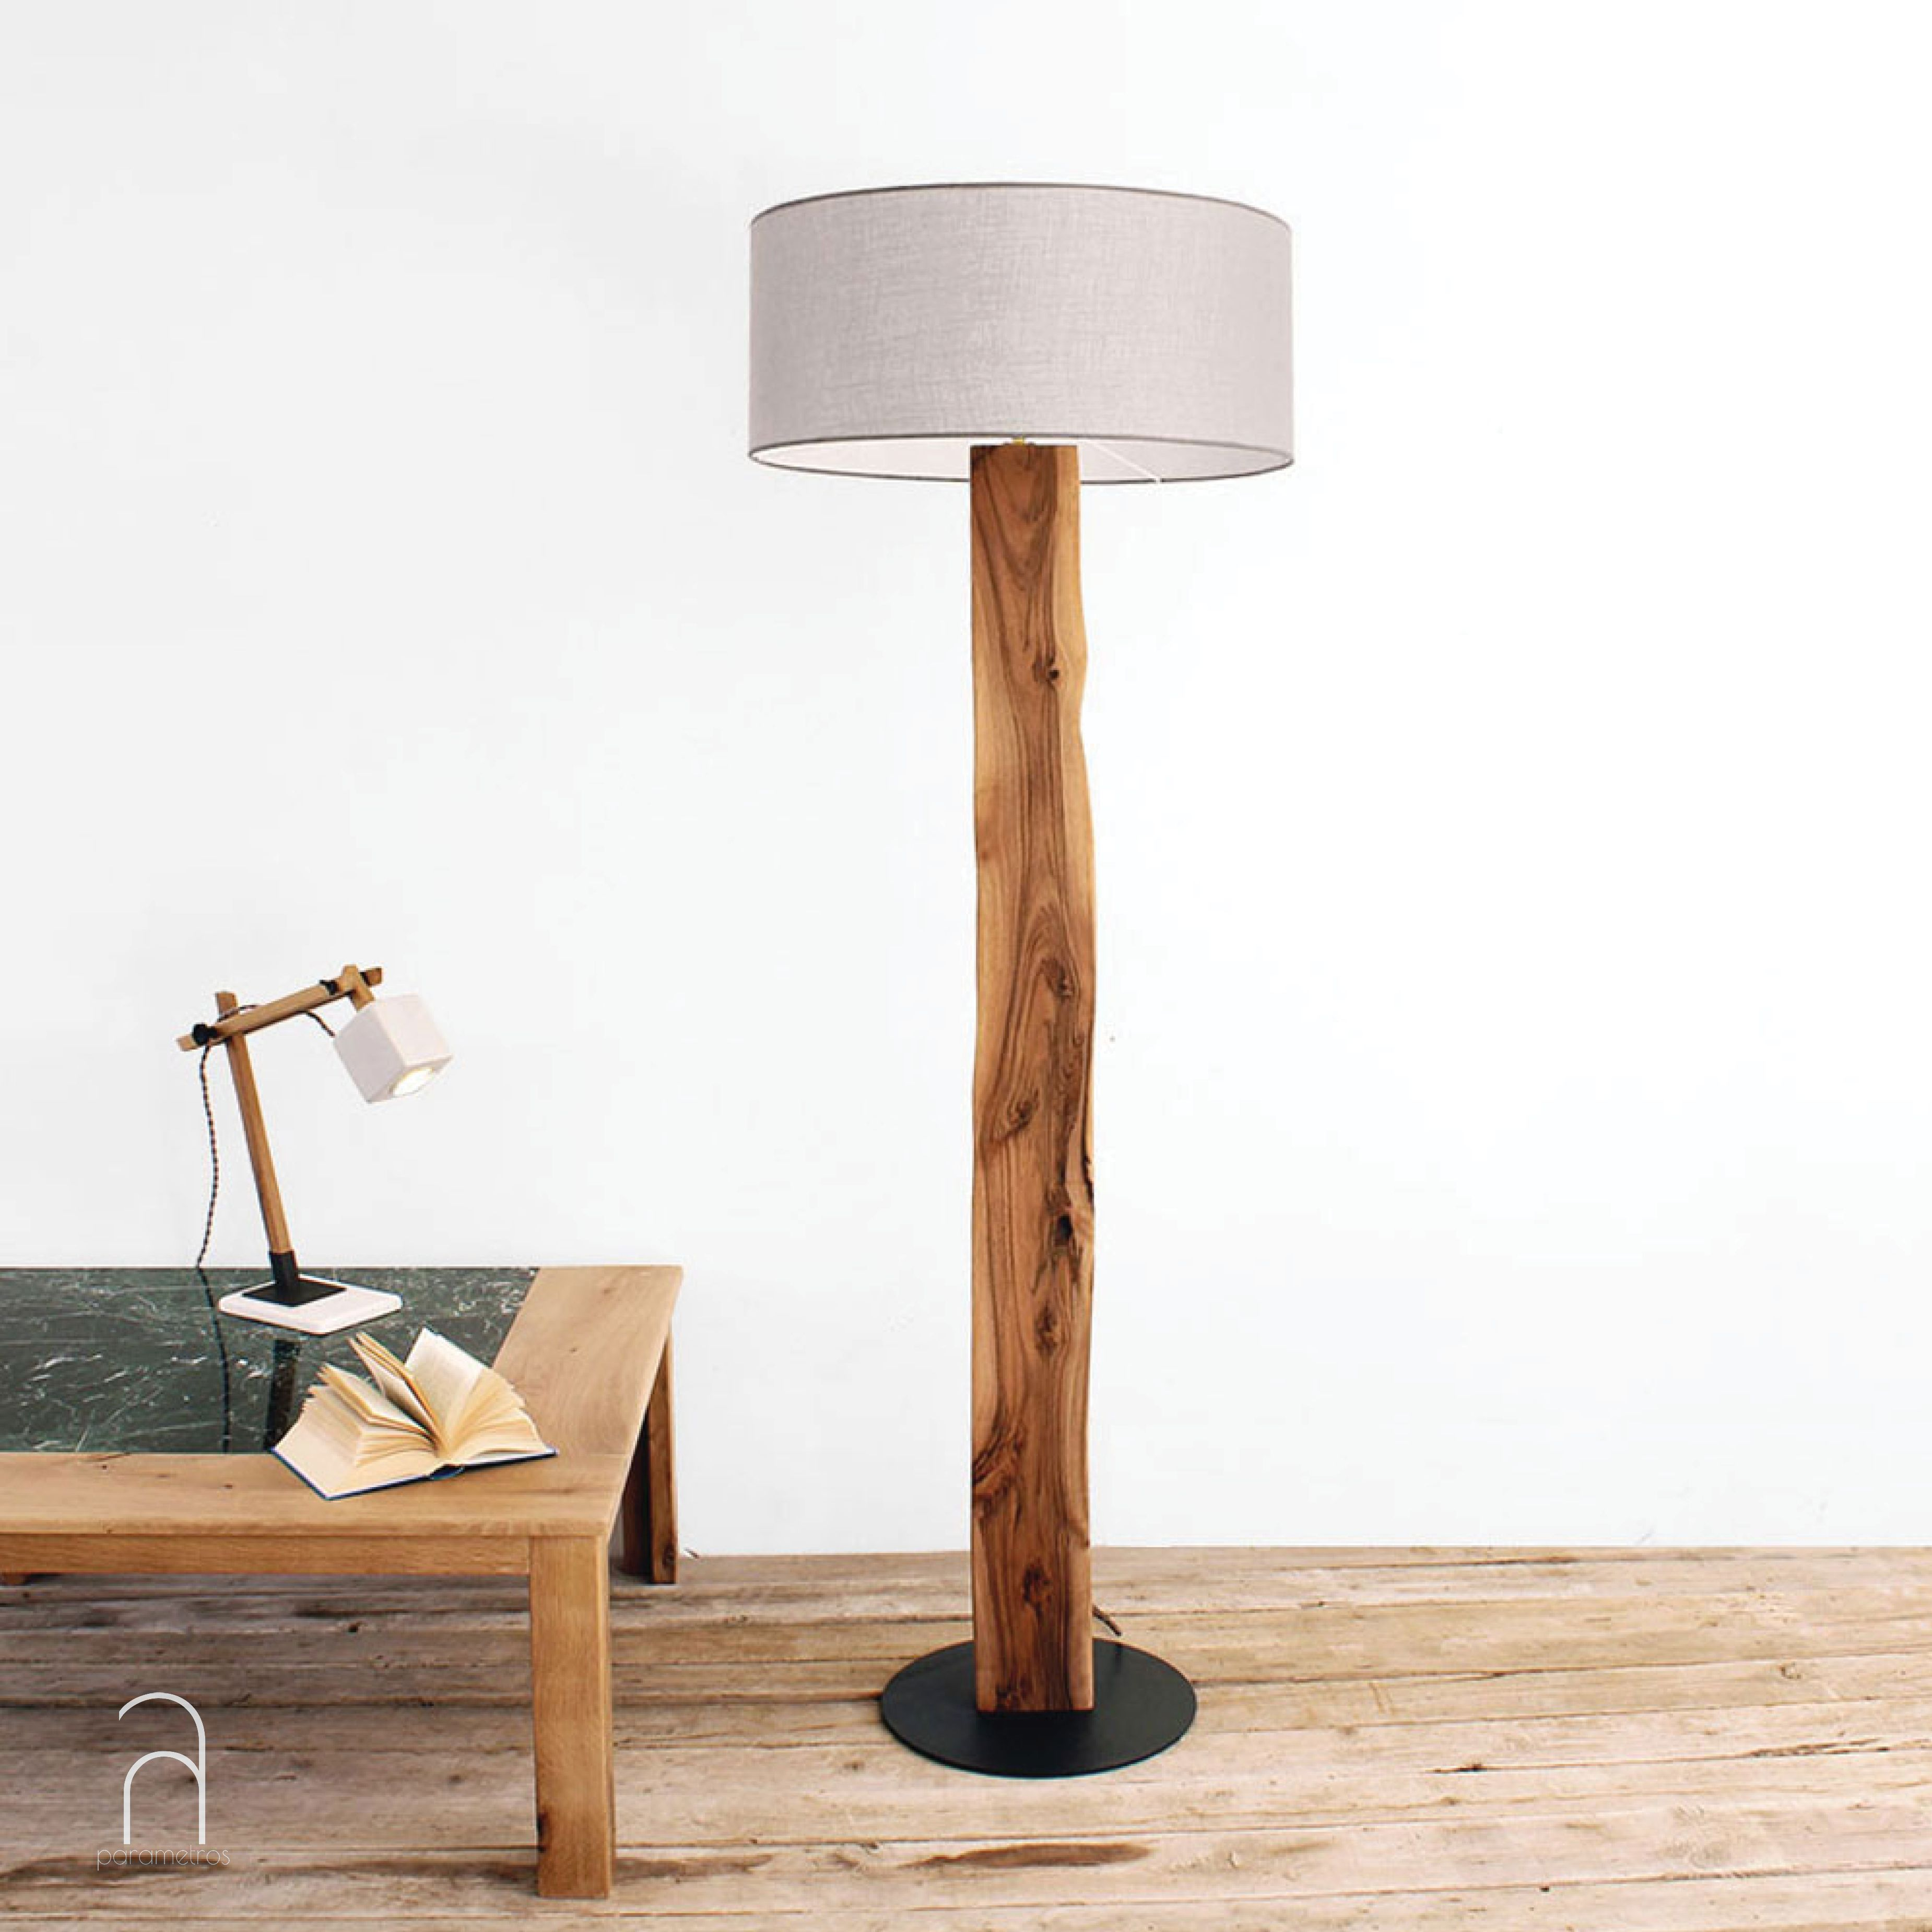 Wooden Floor Lamp By Parametros L Designed And Handcrafted In